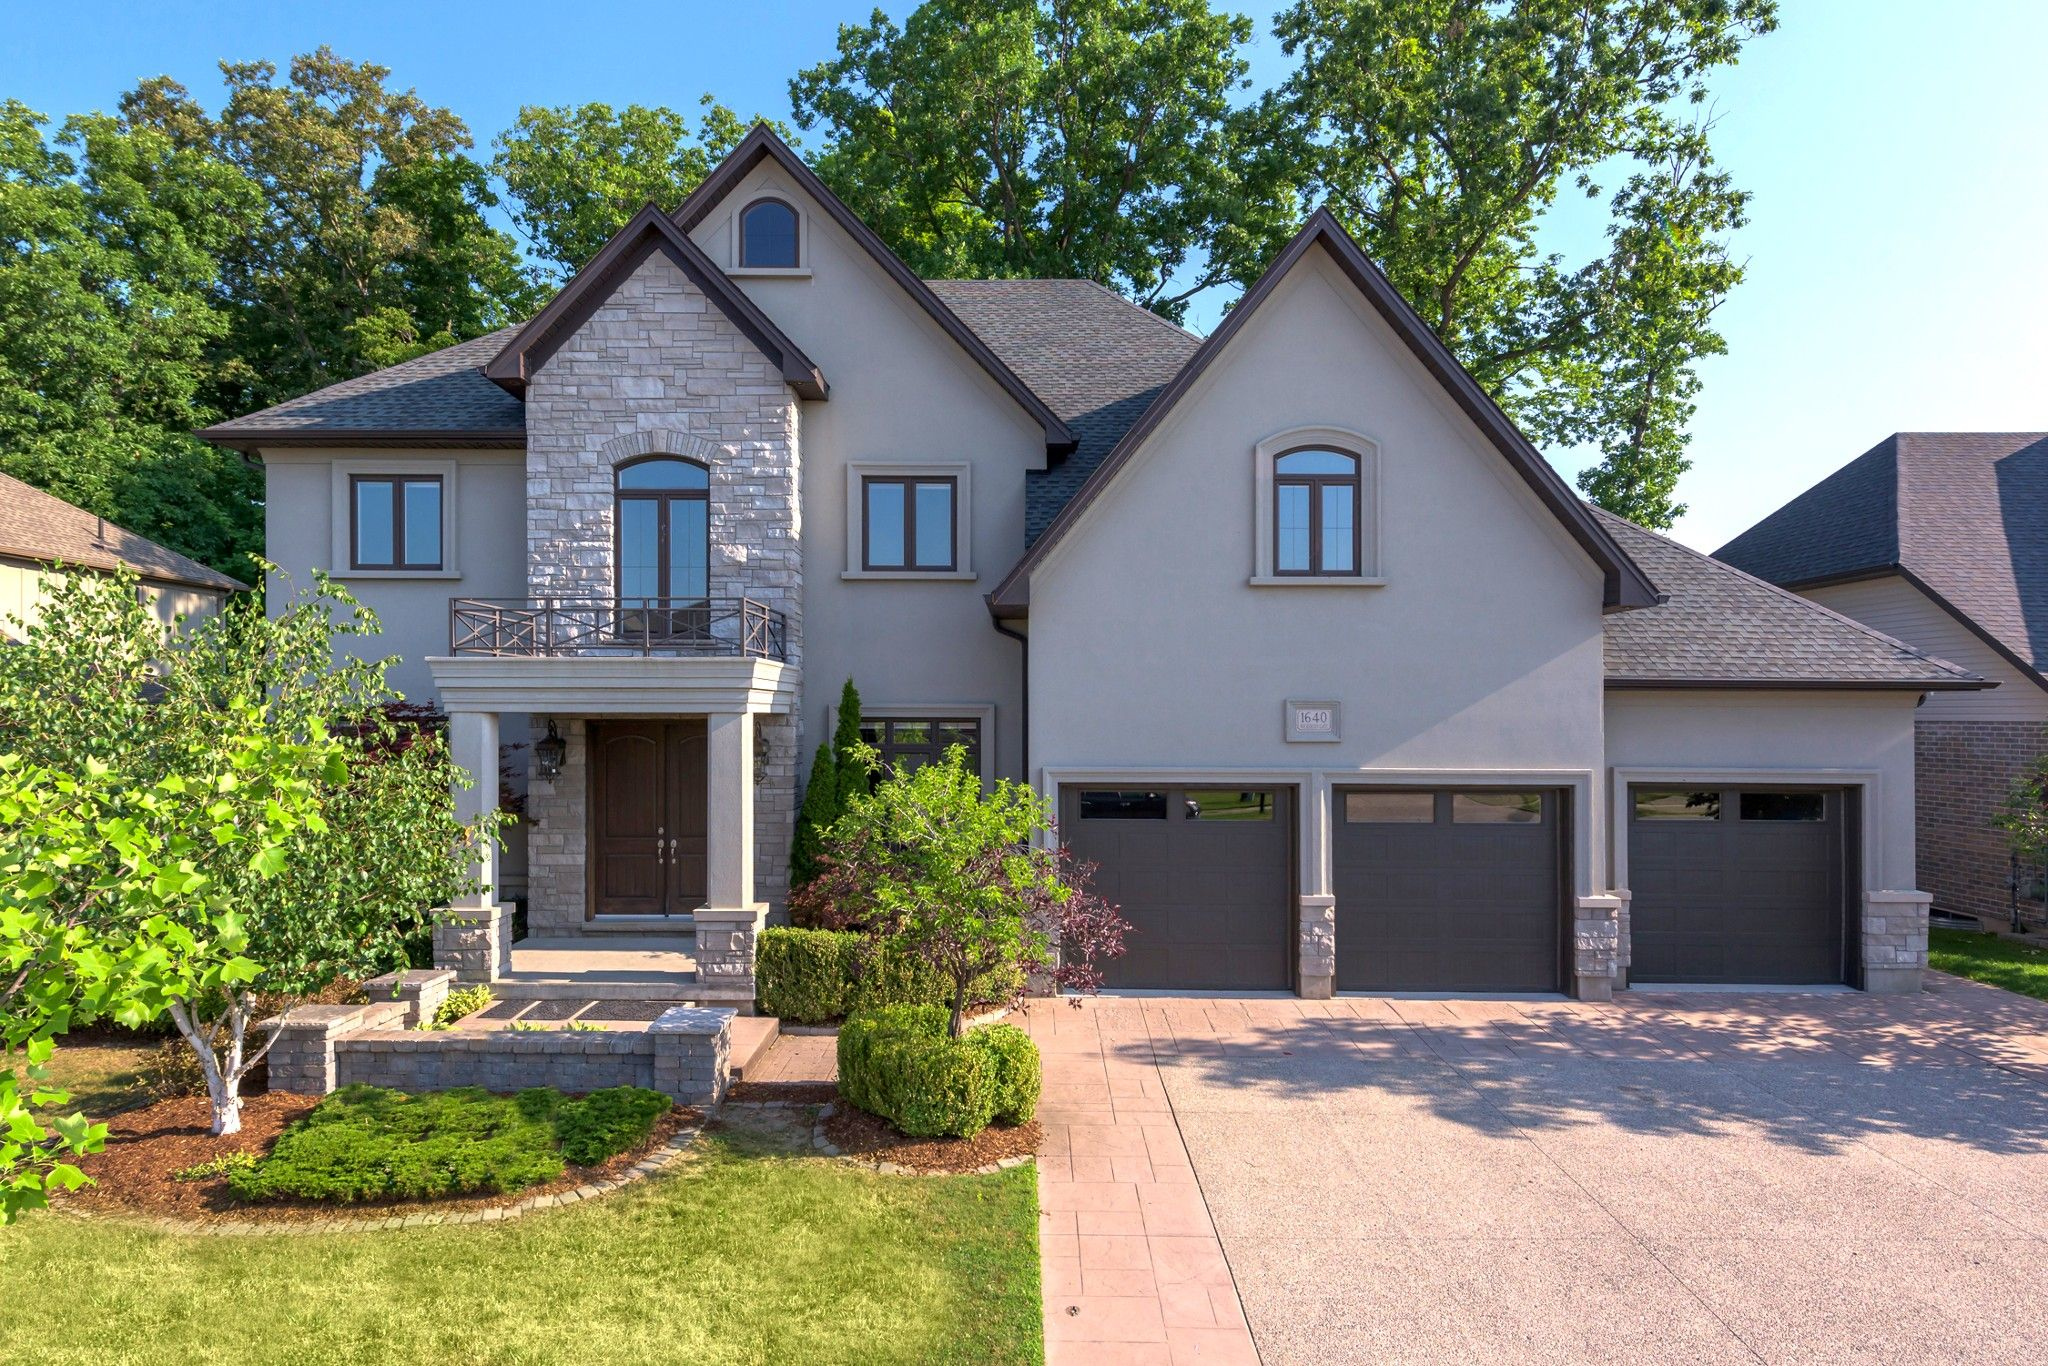 Main Photo: 1640 WICKERSON Gate in London: Property for sale : MLS®# 271785